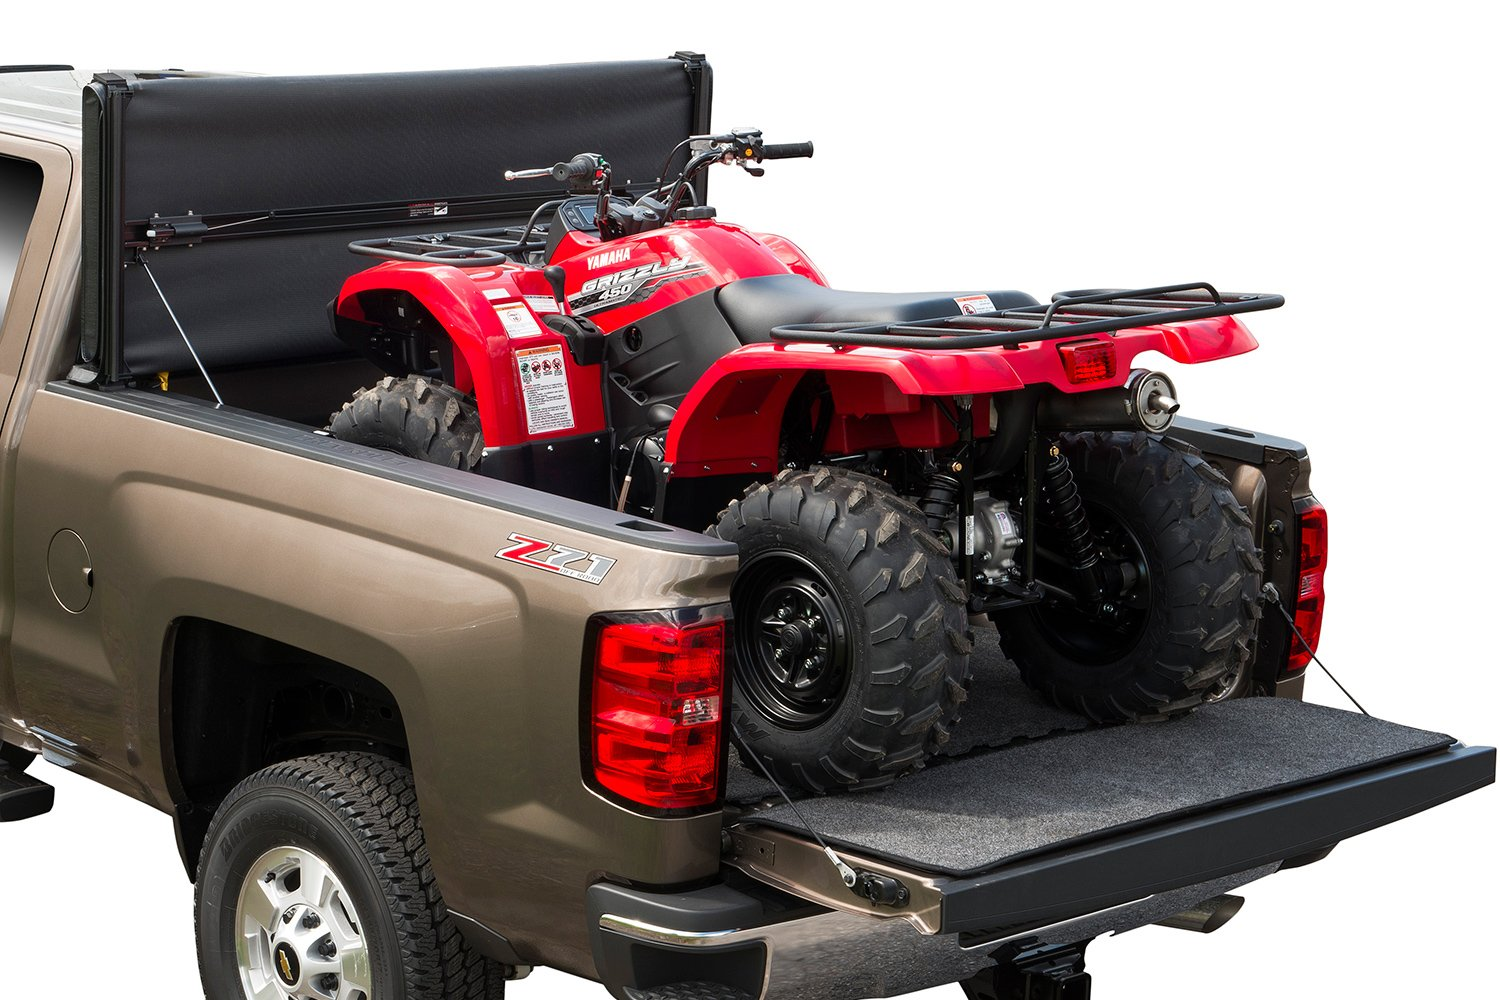 Ford Ranger Bed Cover >> Extang eMAX Folding Tonneau Cover - Free Shipping